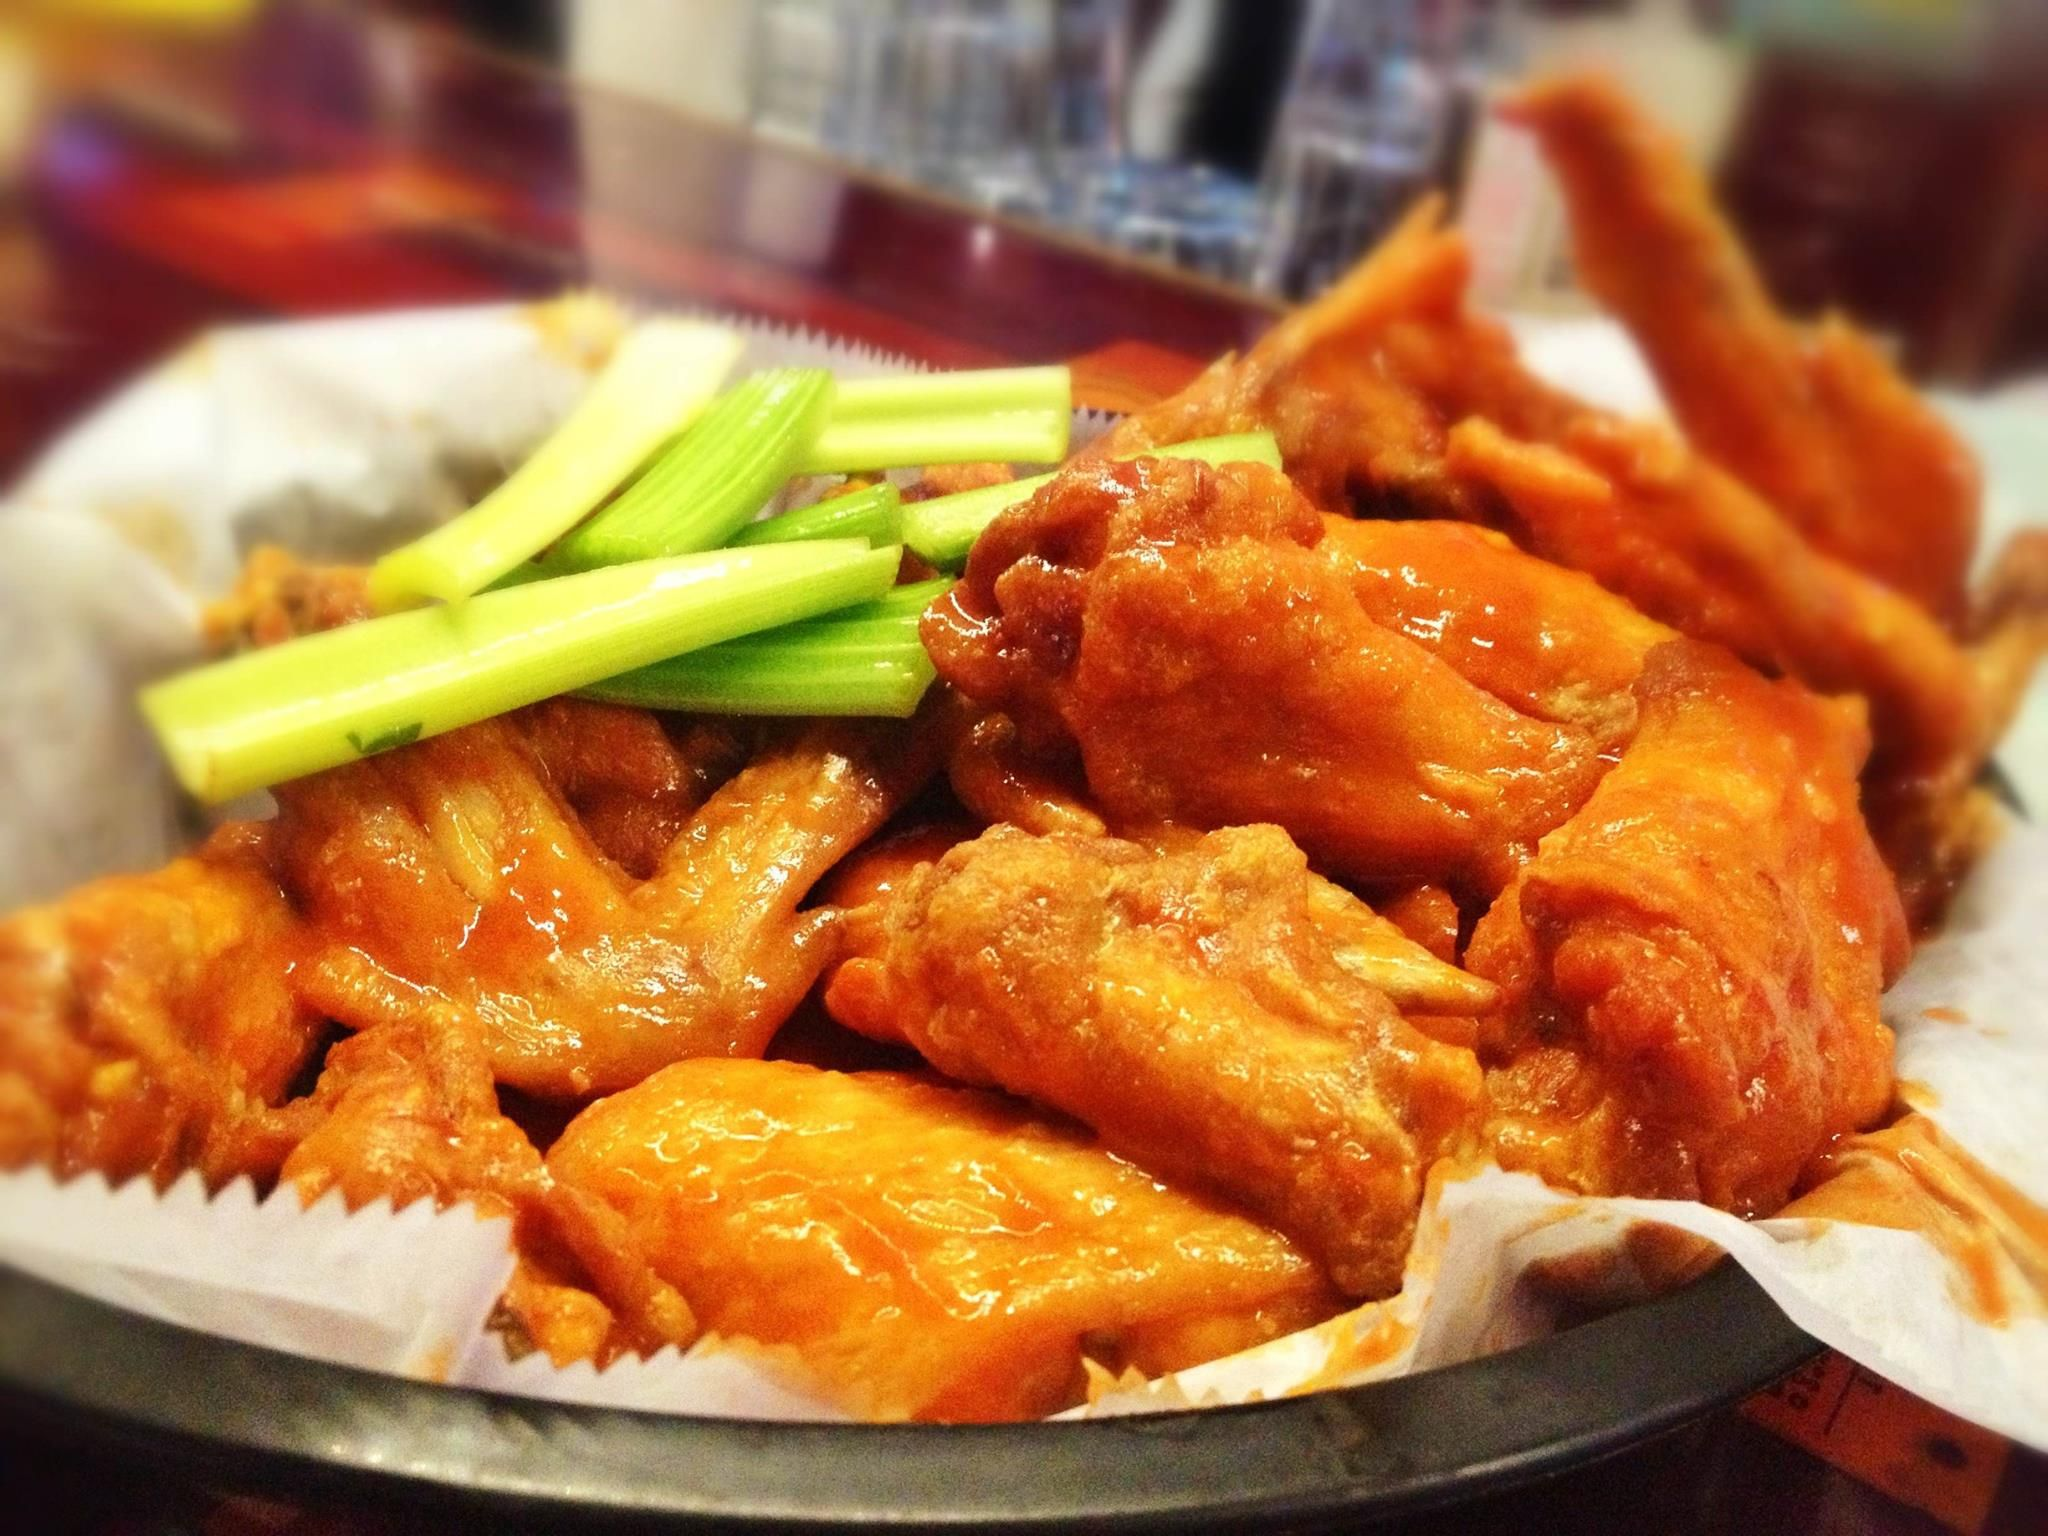 A basket of wings from Barrel Junction in Gibsonia, PA